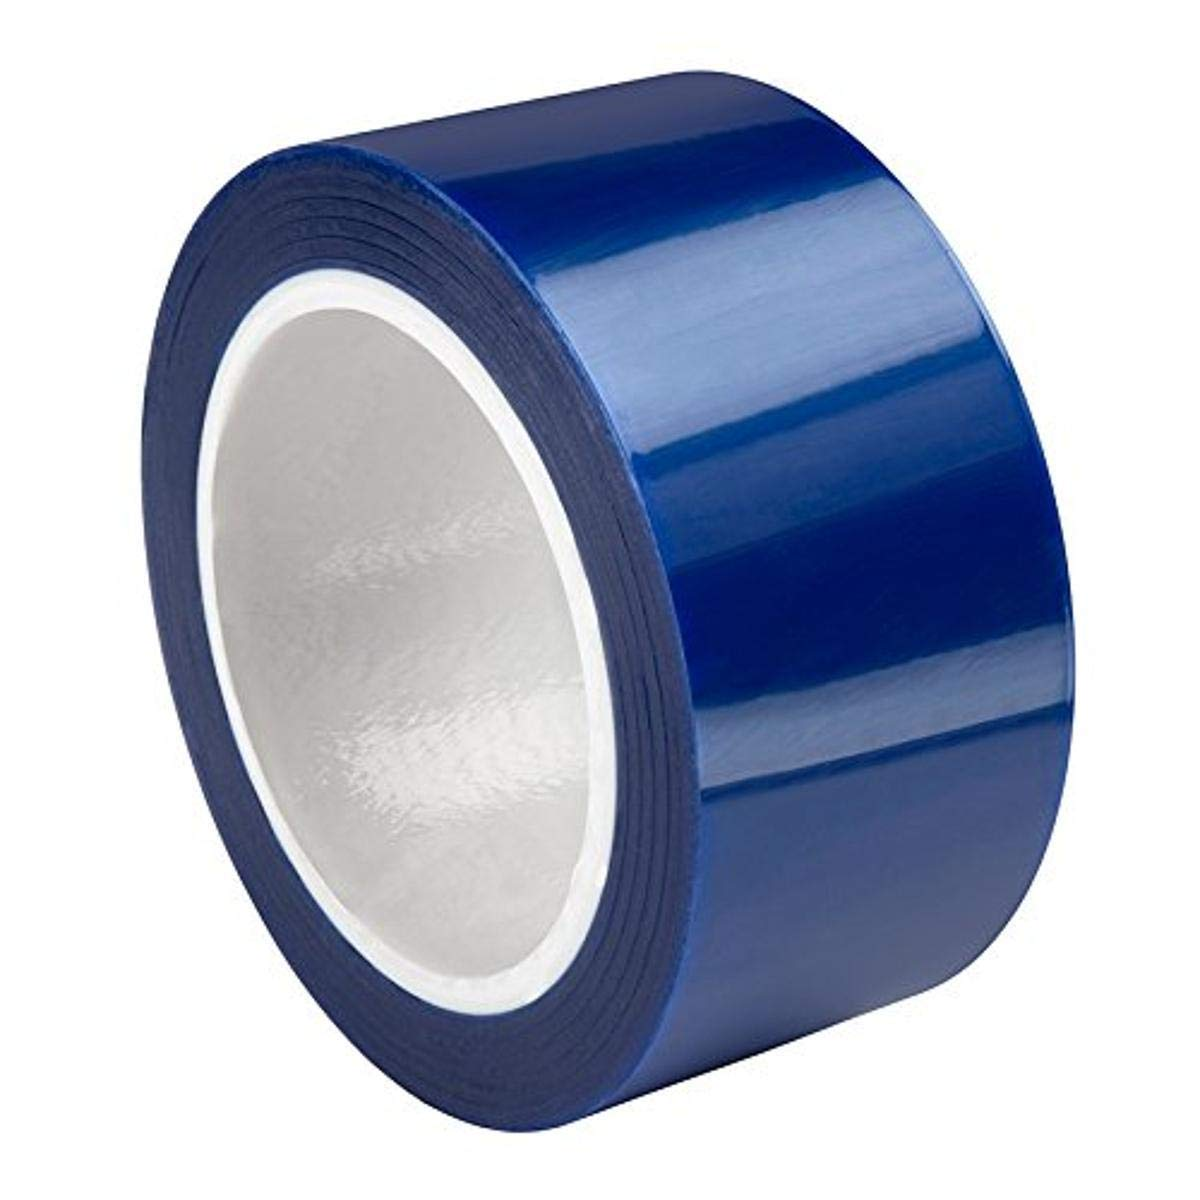 TapeCase TC572 2 X 72YD-Blue TC572 2 mil Blue Silicone Splicing Tape, 2 Wide, 72 yd. Length, Blue